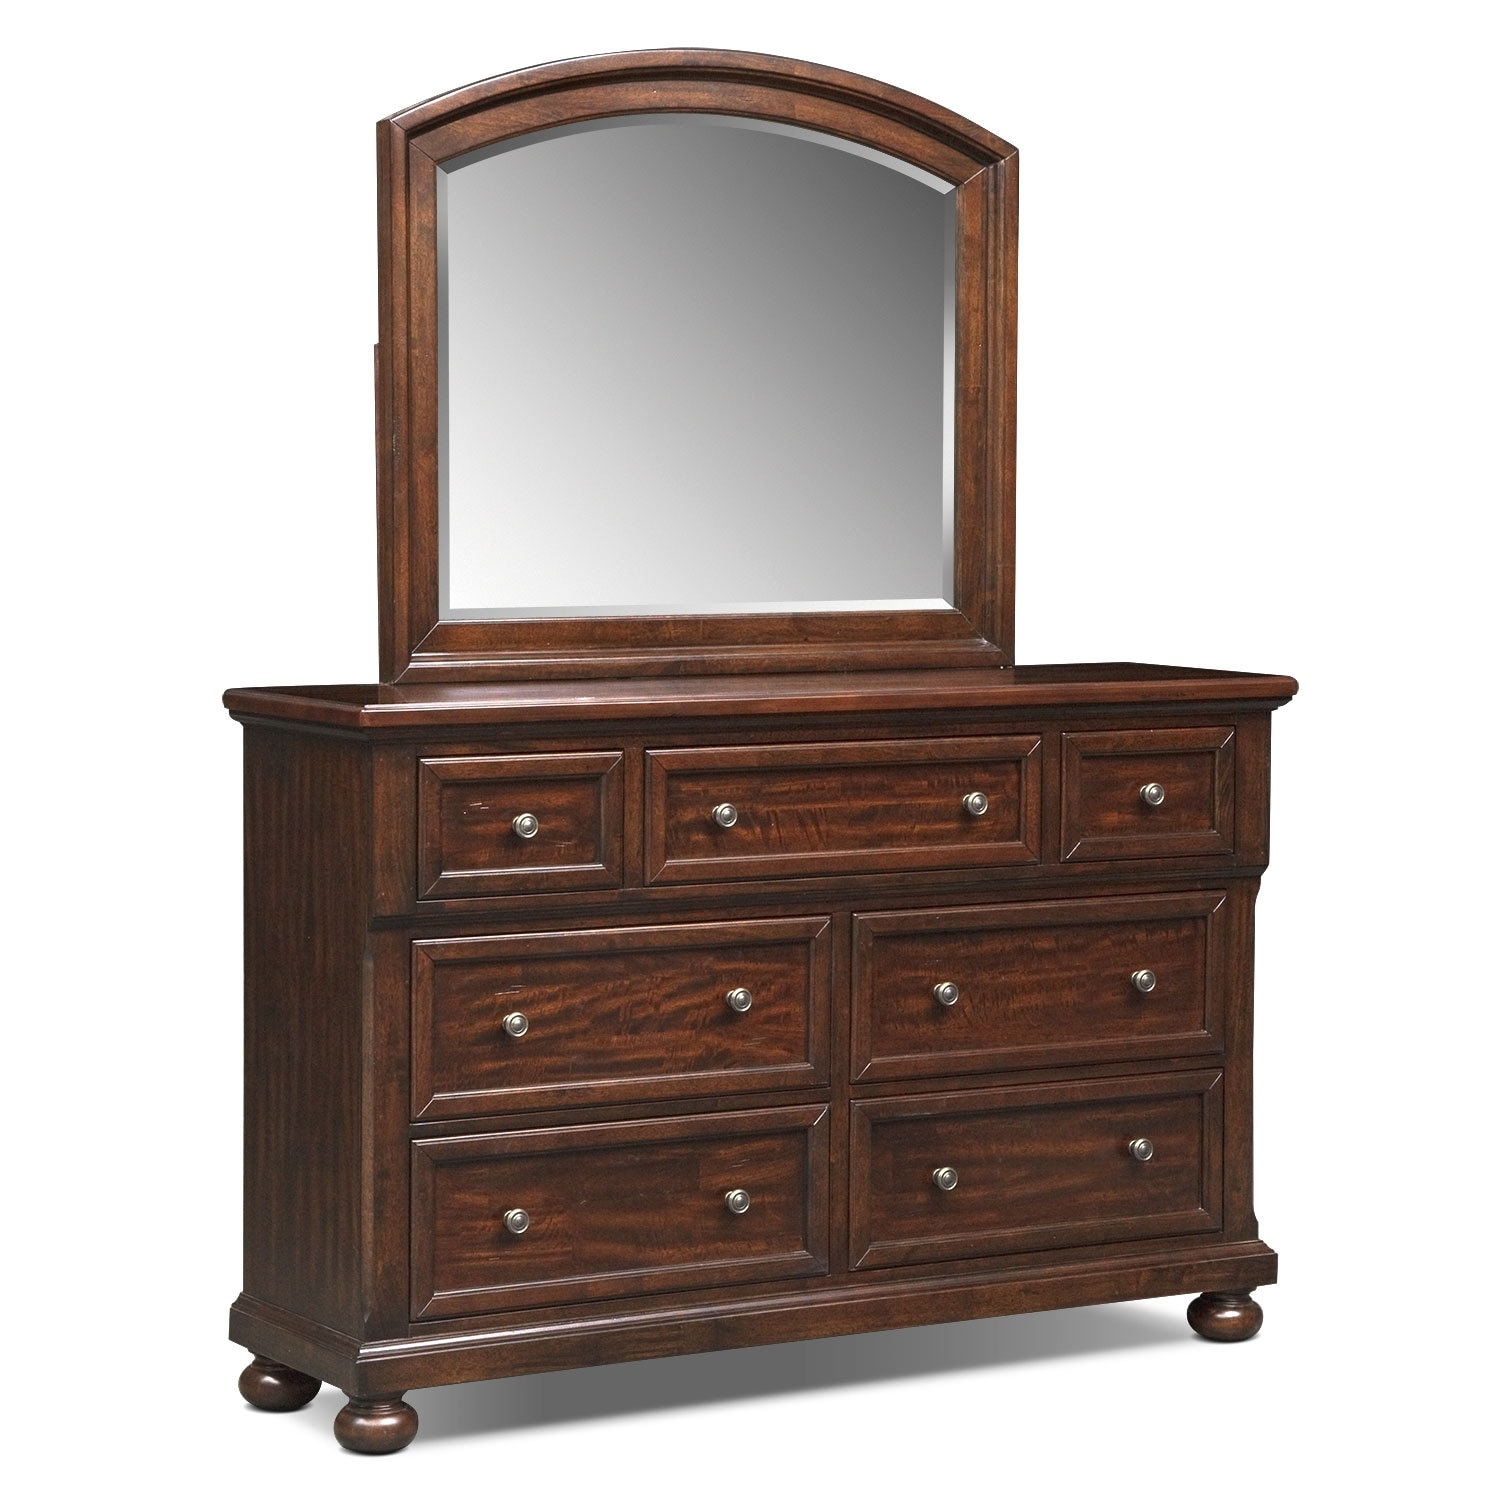 Bedroom Furniture - Hanover Dresser and Mirror